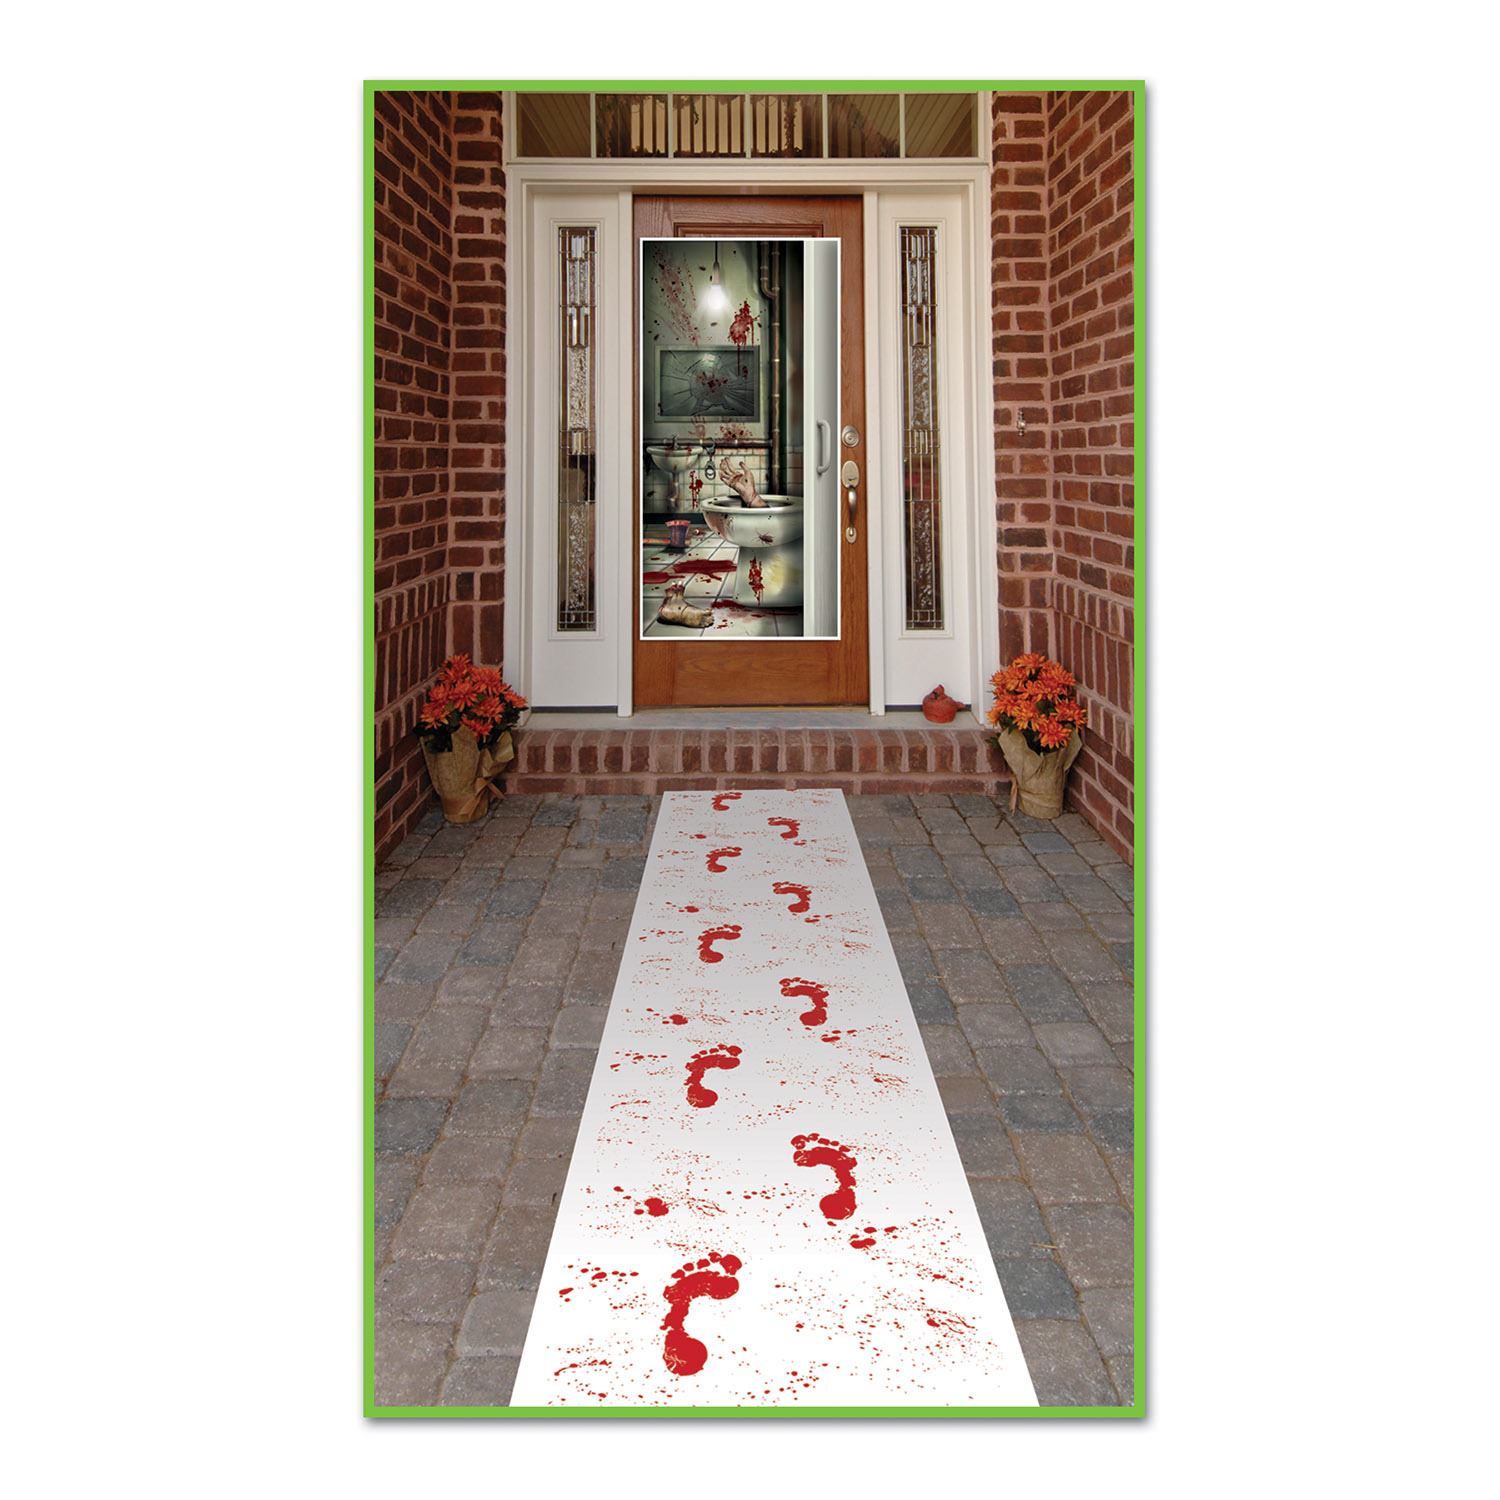 BLOODY FOOTPRINTS FLOOR RUNNER